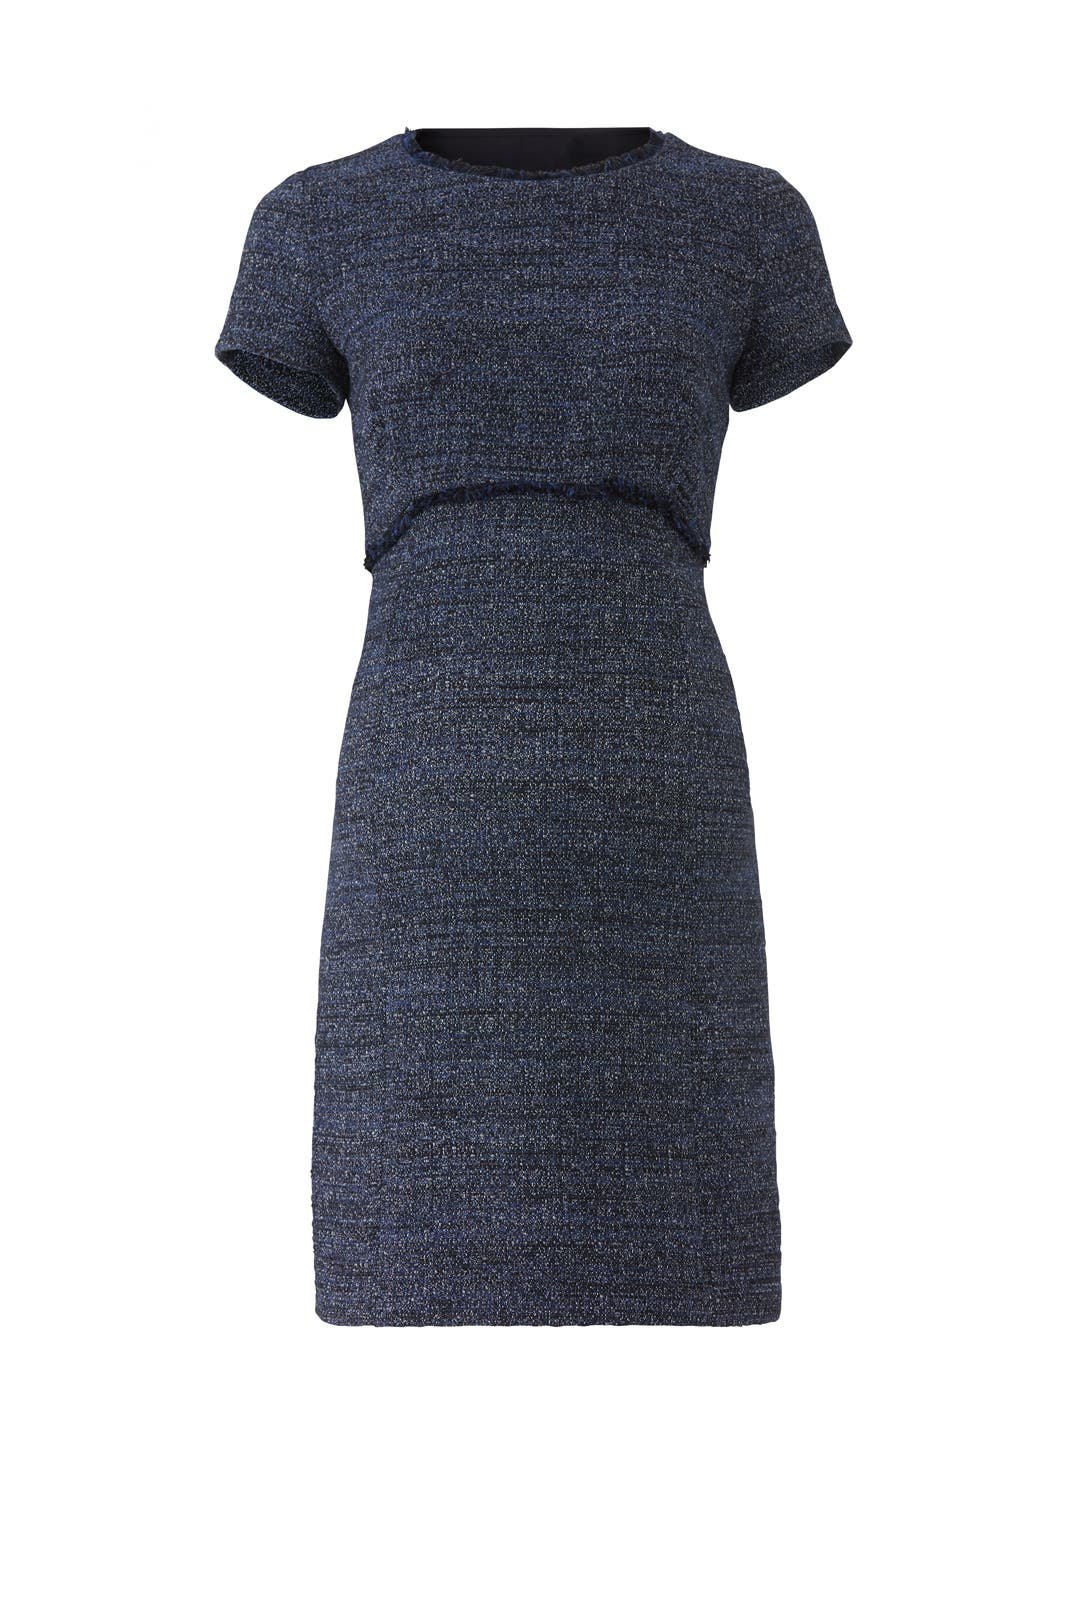 b7211acad2c5d Kiara A-Line Tweed Maternity Dress by Seraphine for $30 | Rent the ...